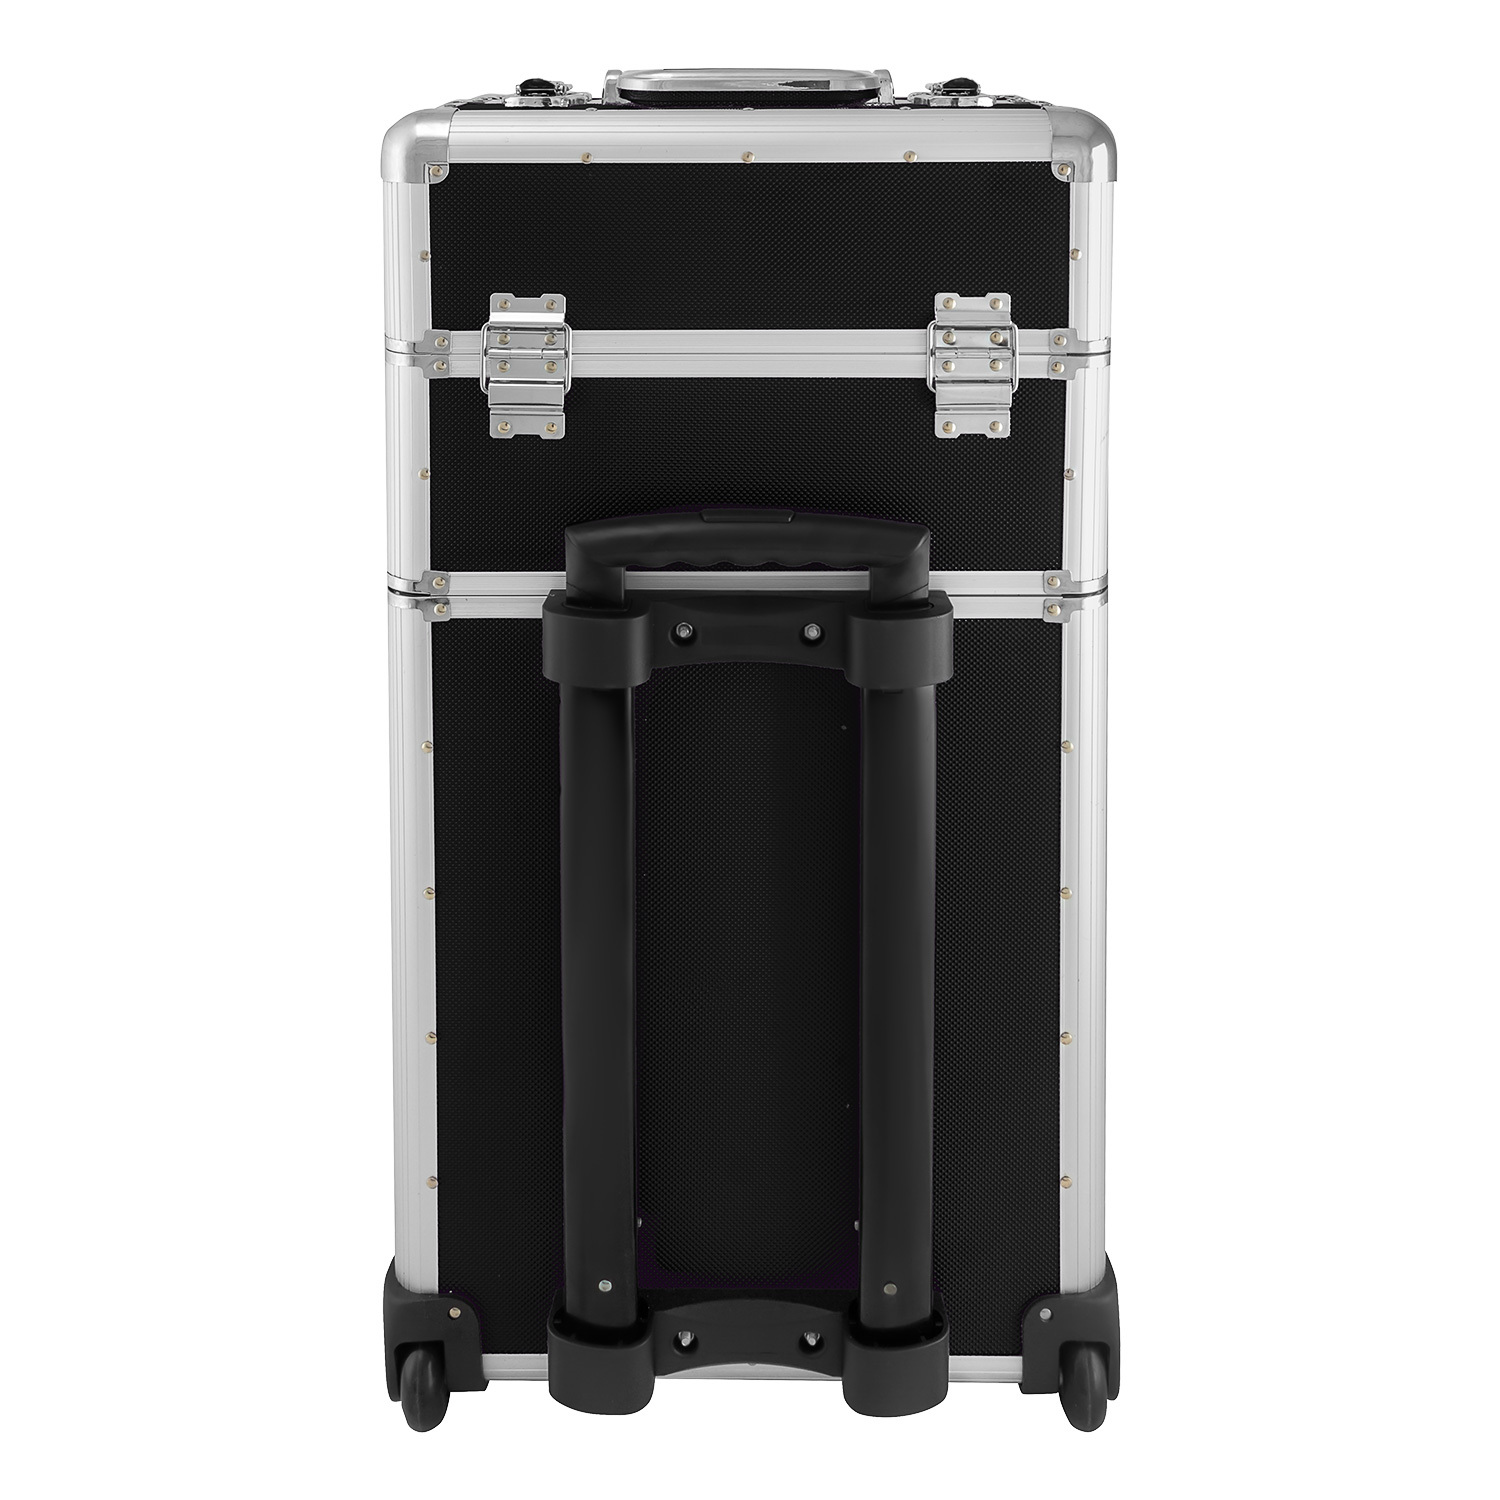 anndora aluminium koffer 2 rad trolley 60 l pilotenkoffer beauty case schwarz ebay. Black Bedroom Furniture Sets. Home Design Ideas